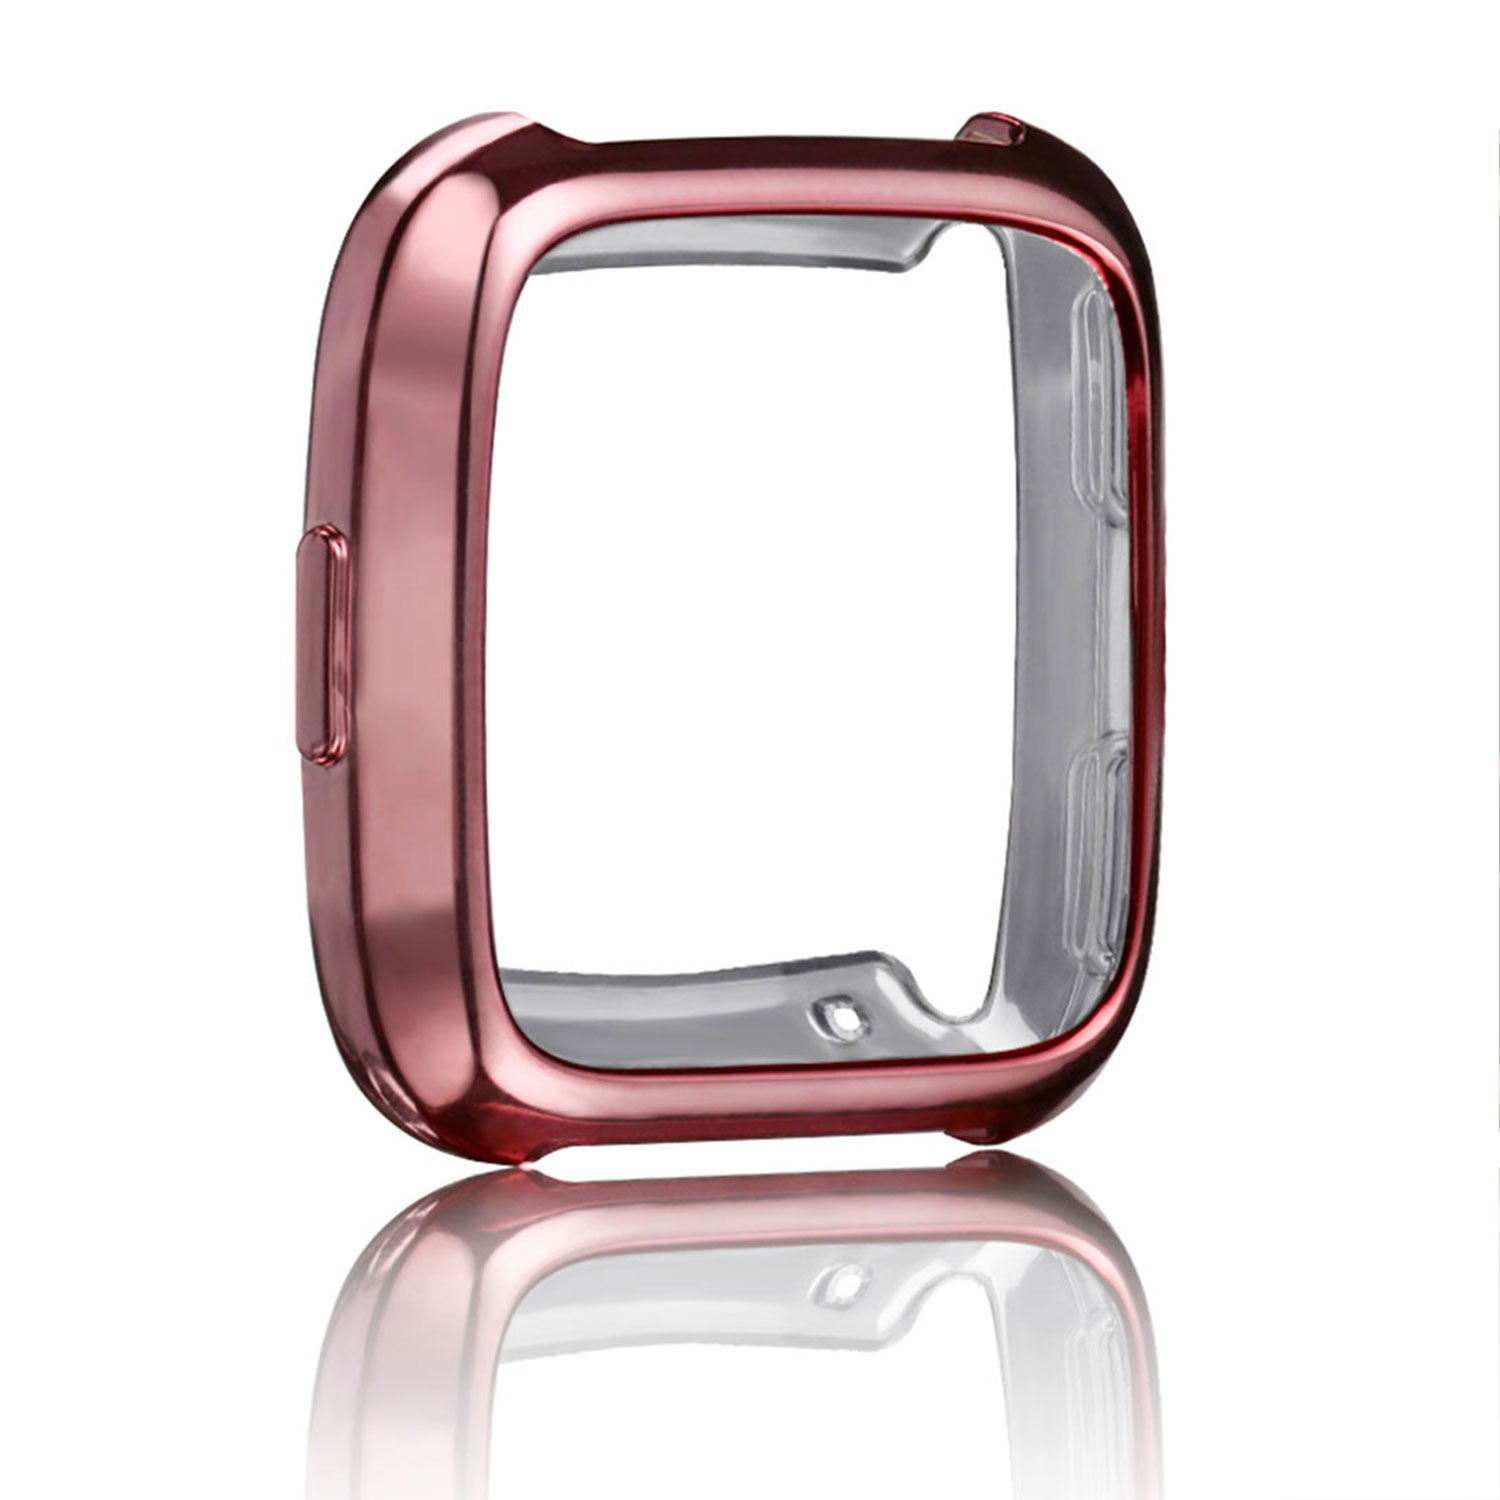 Amazon.com: For Fitbit Versa Watch case Plated, Rosa ...